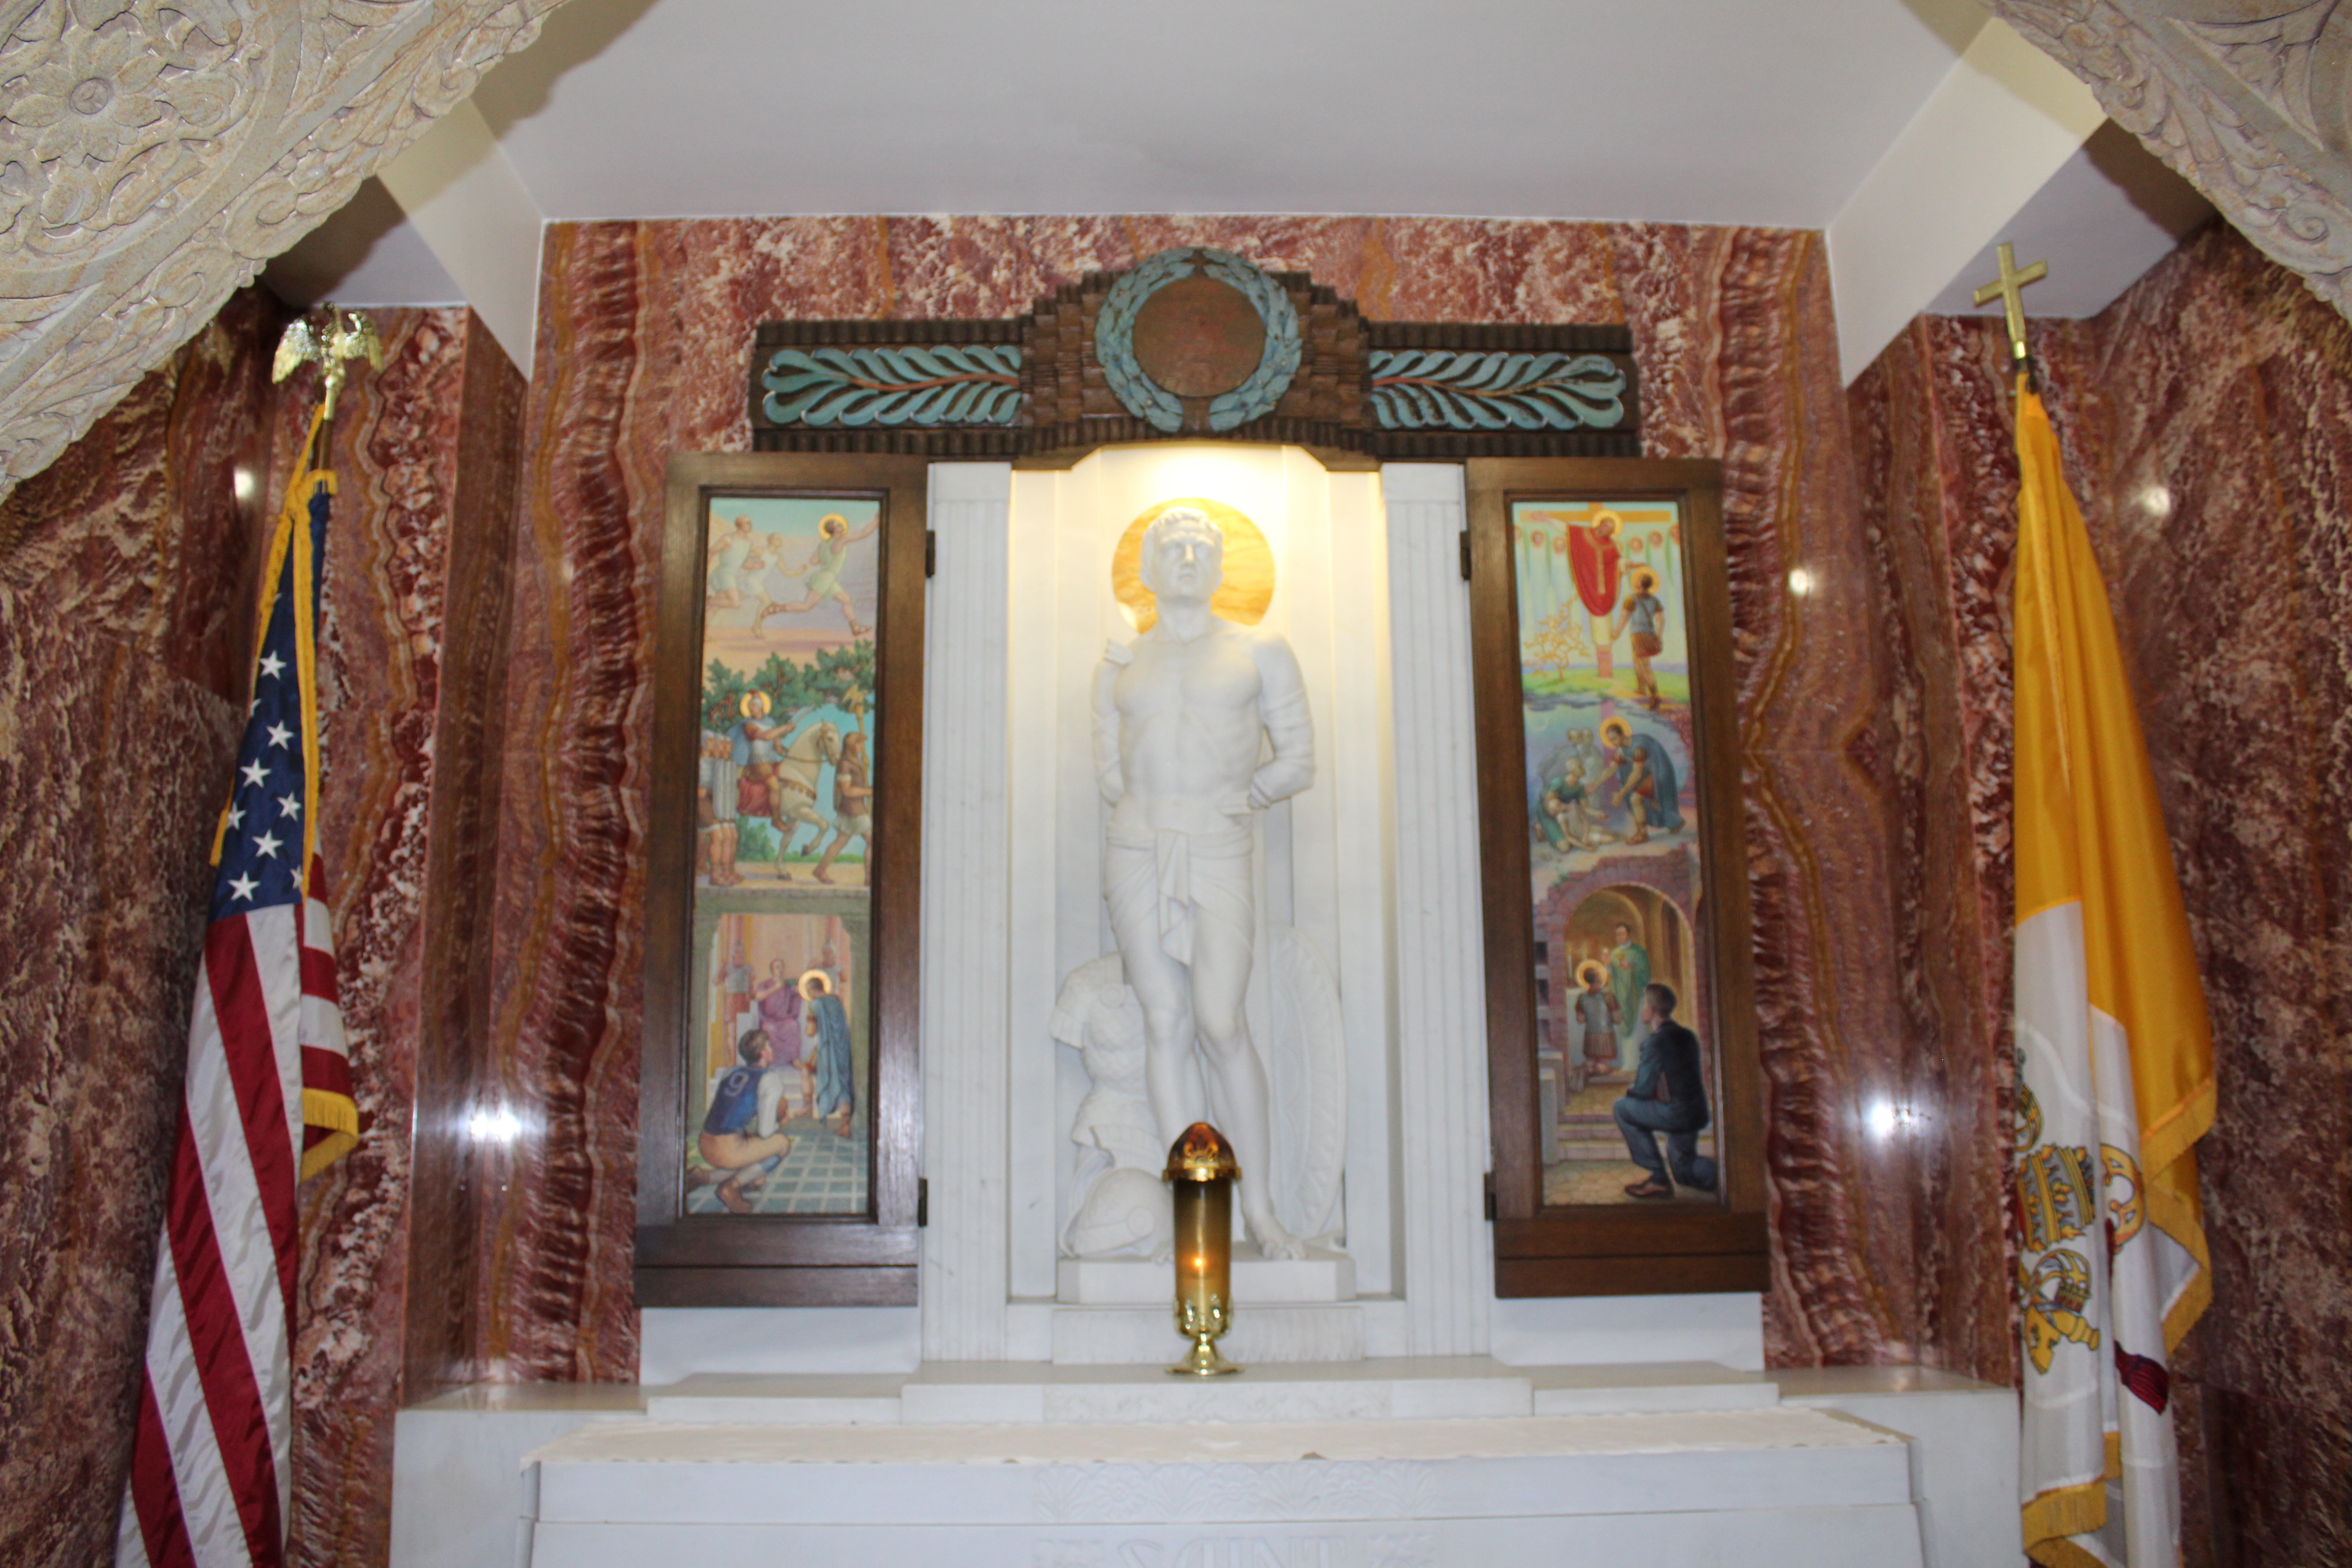 A marble statue of a saint is flanked by paintings of people.